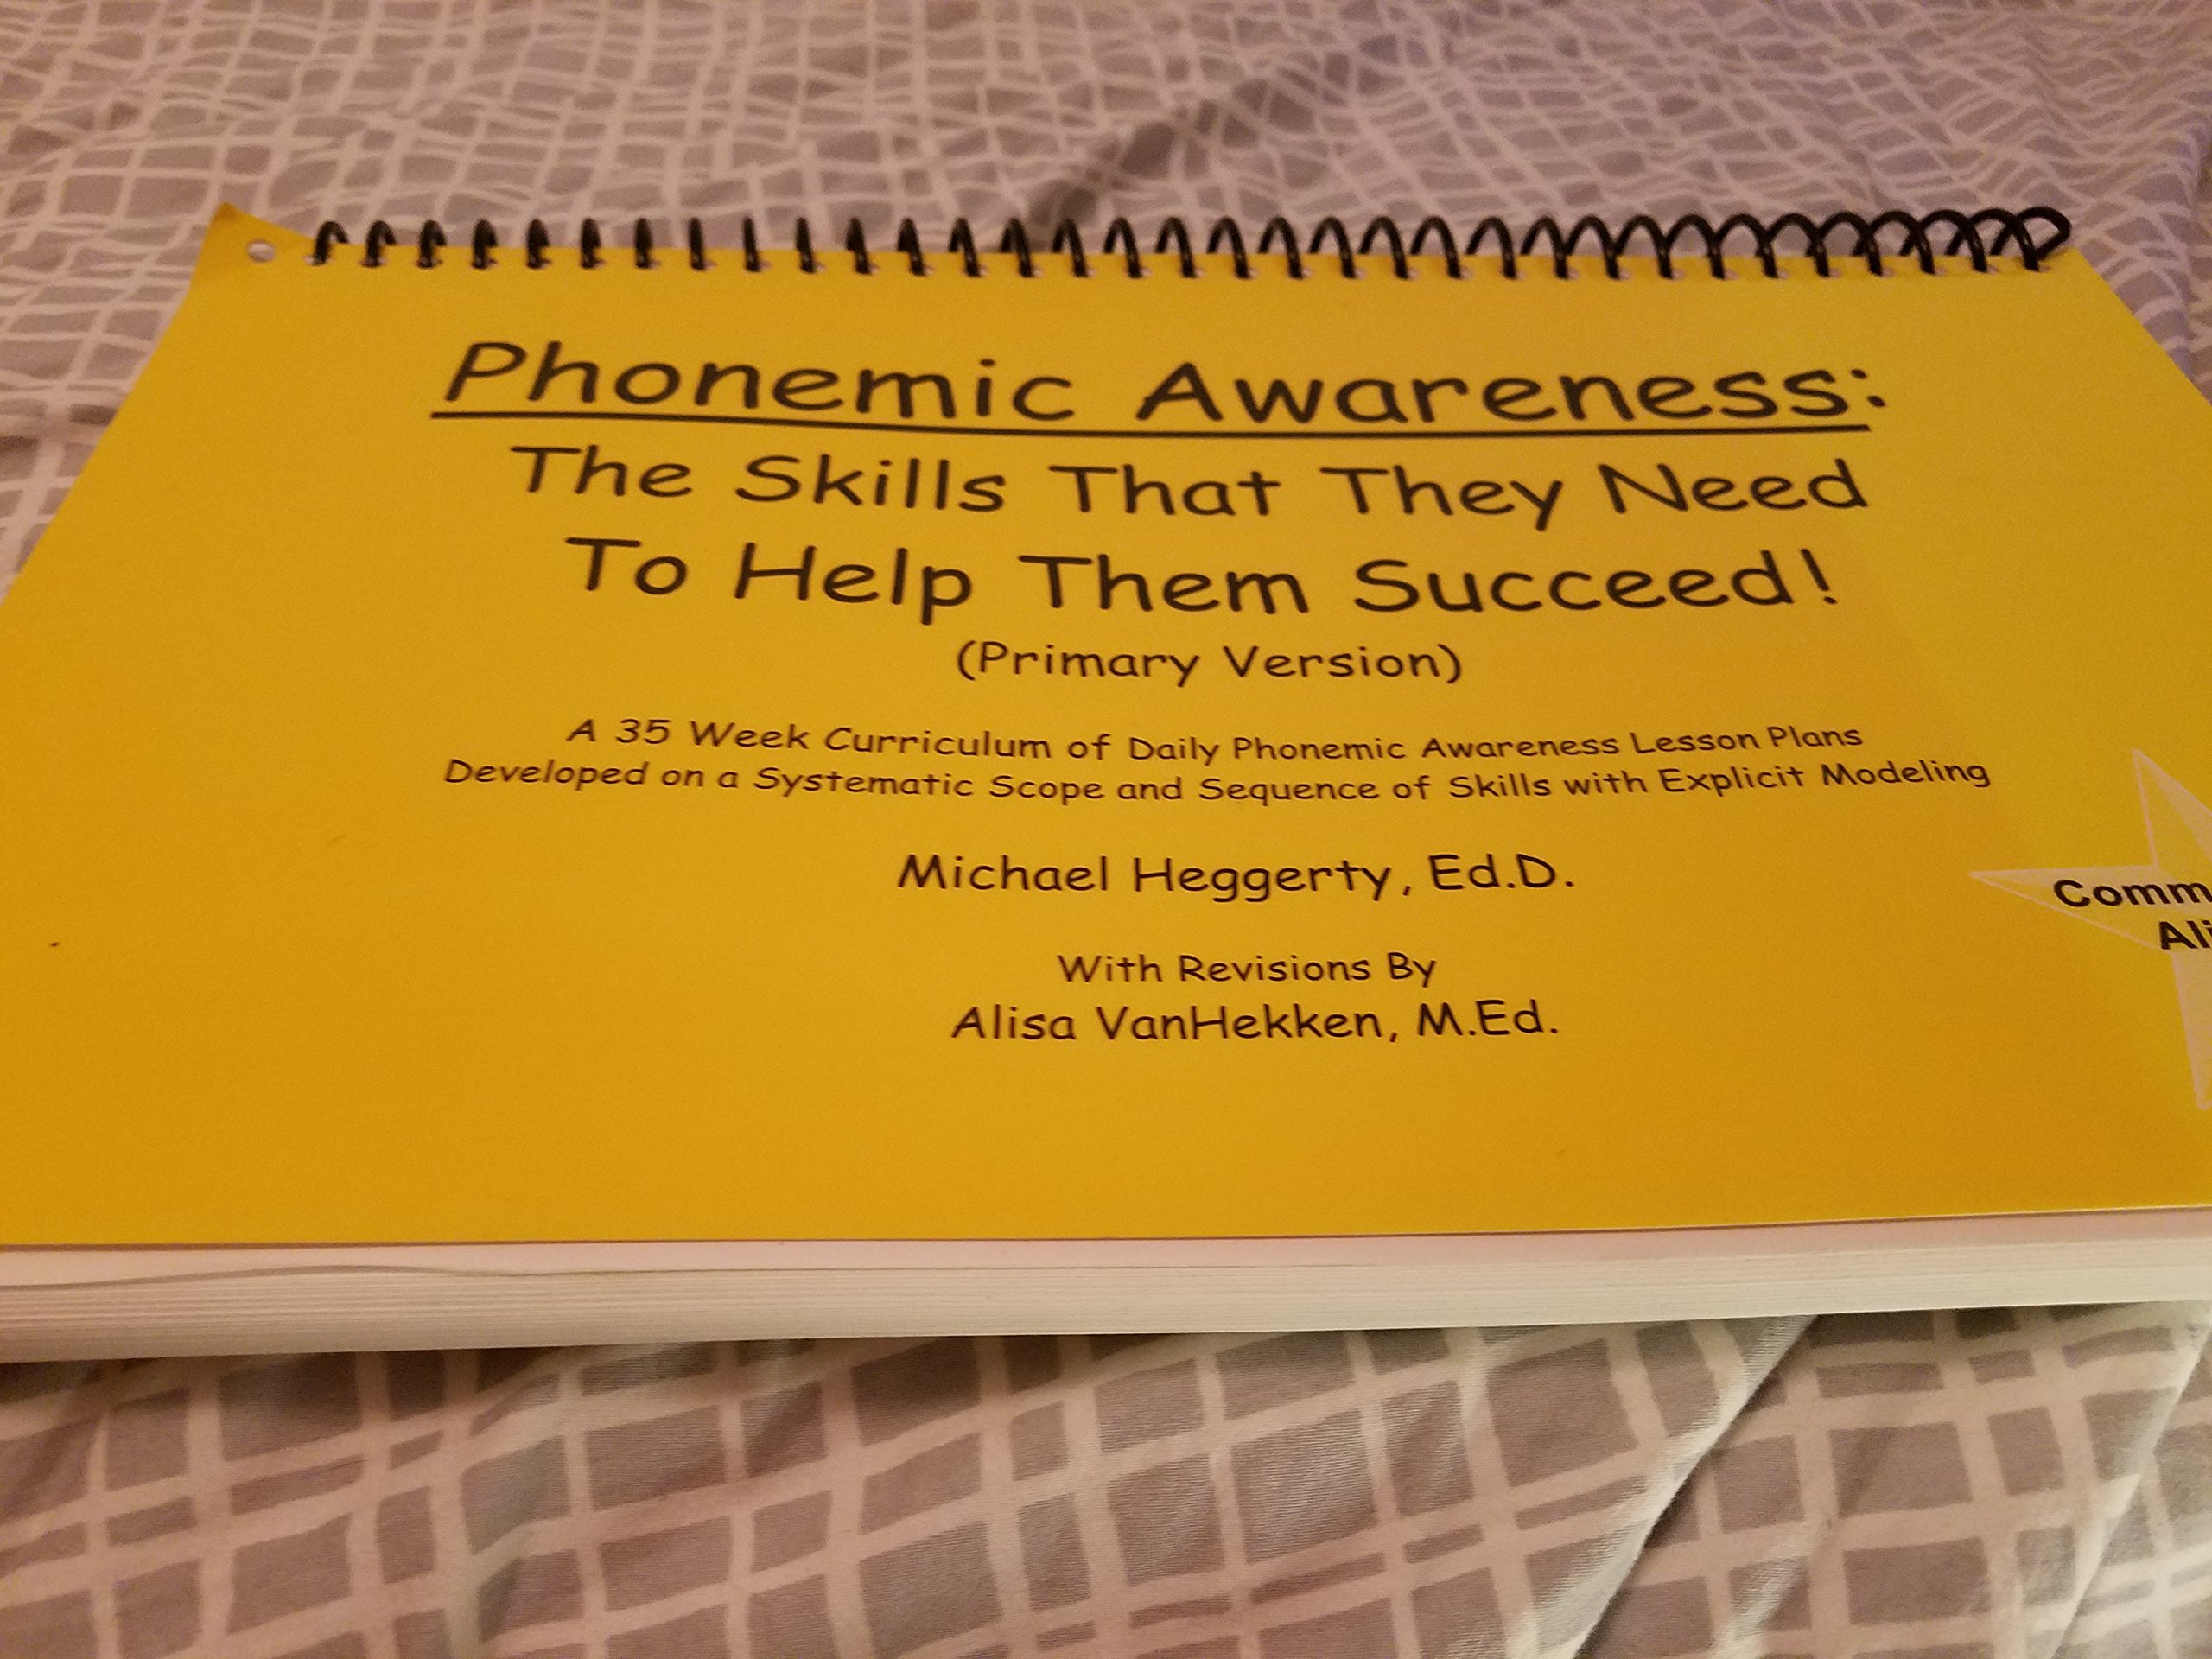 Phonemic Awareness The Skills That They Need To Help Them Succeed